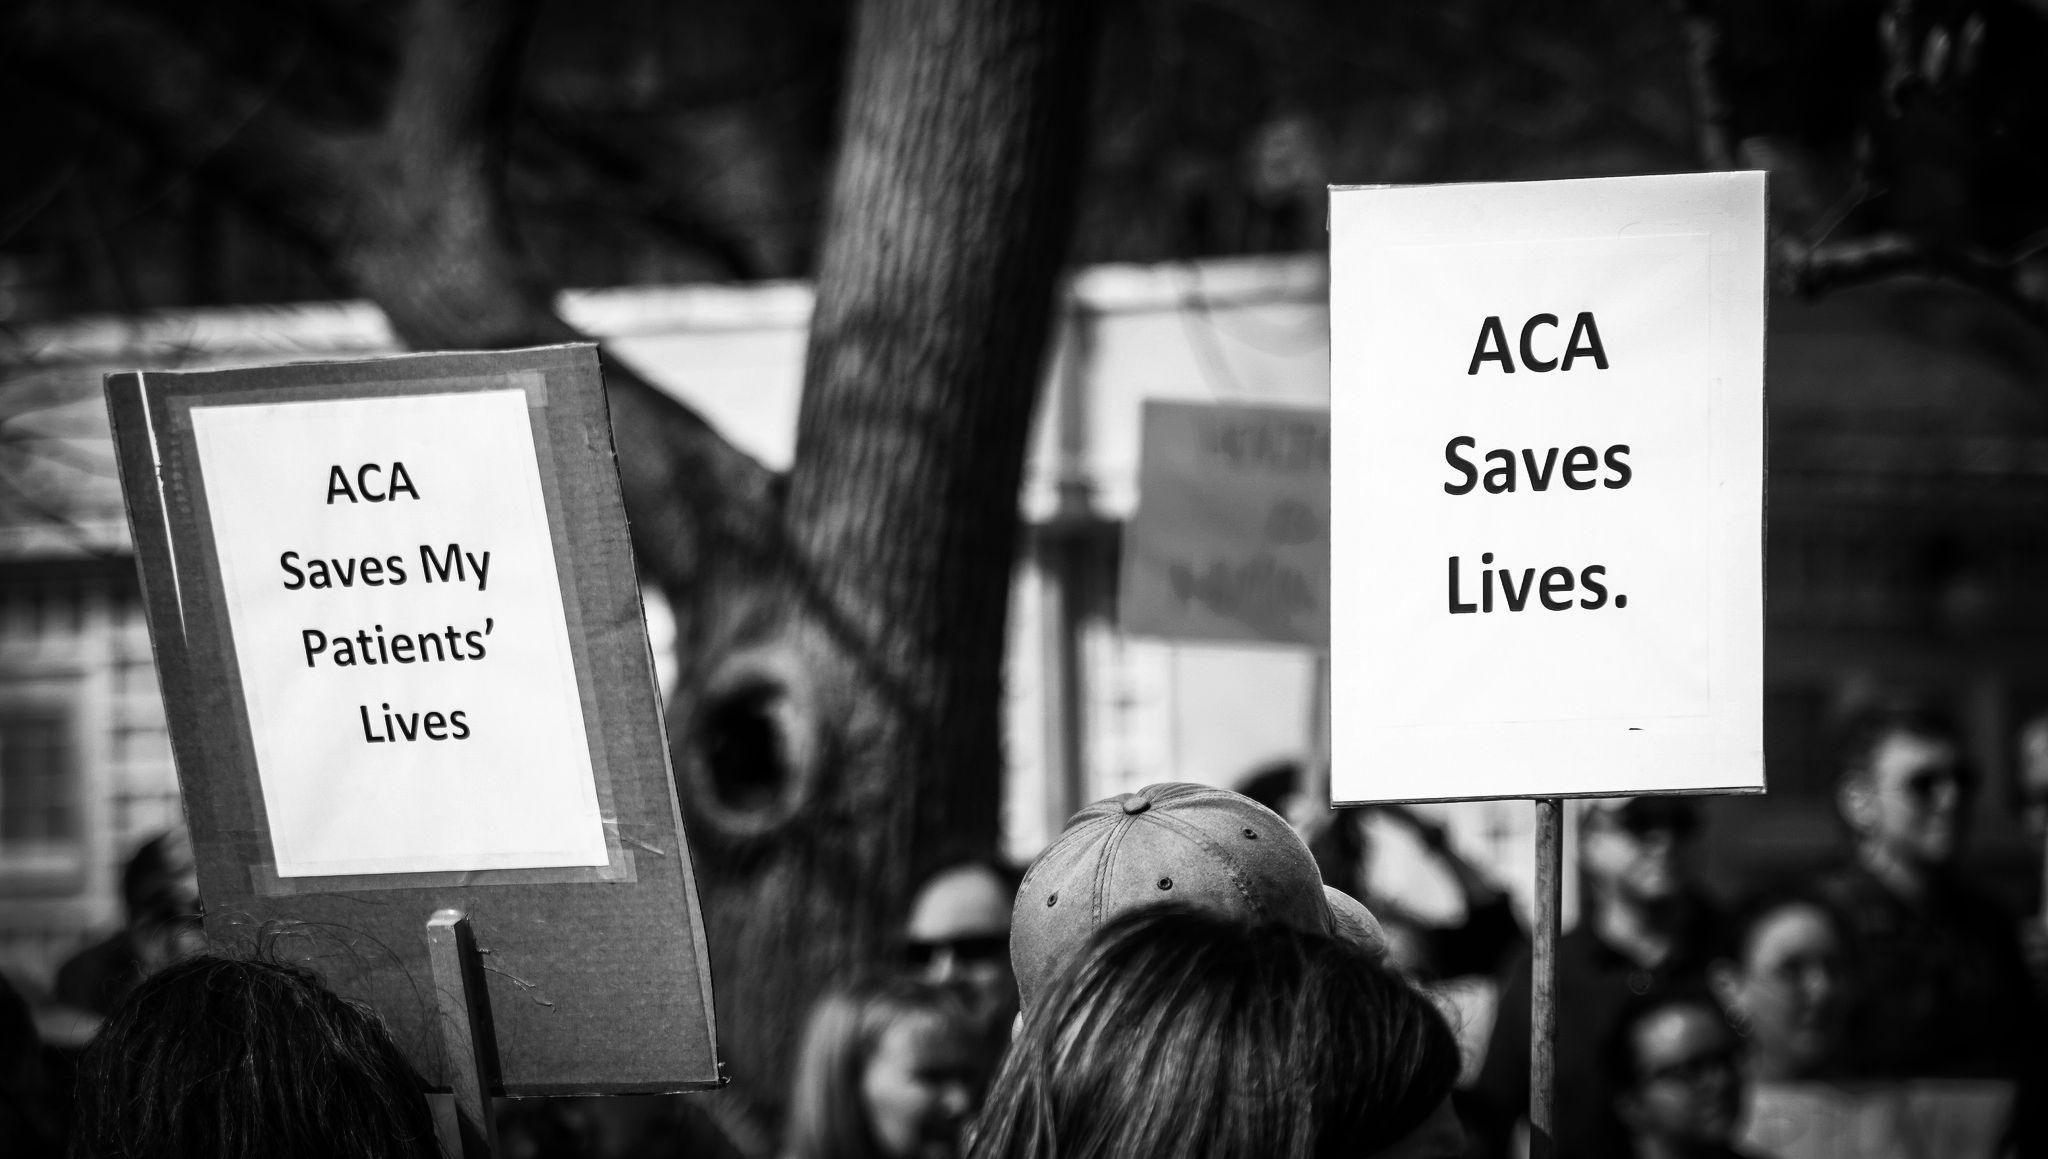 Cable and broadcast news have virtually failed to discuss the ACA open-enrollment period